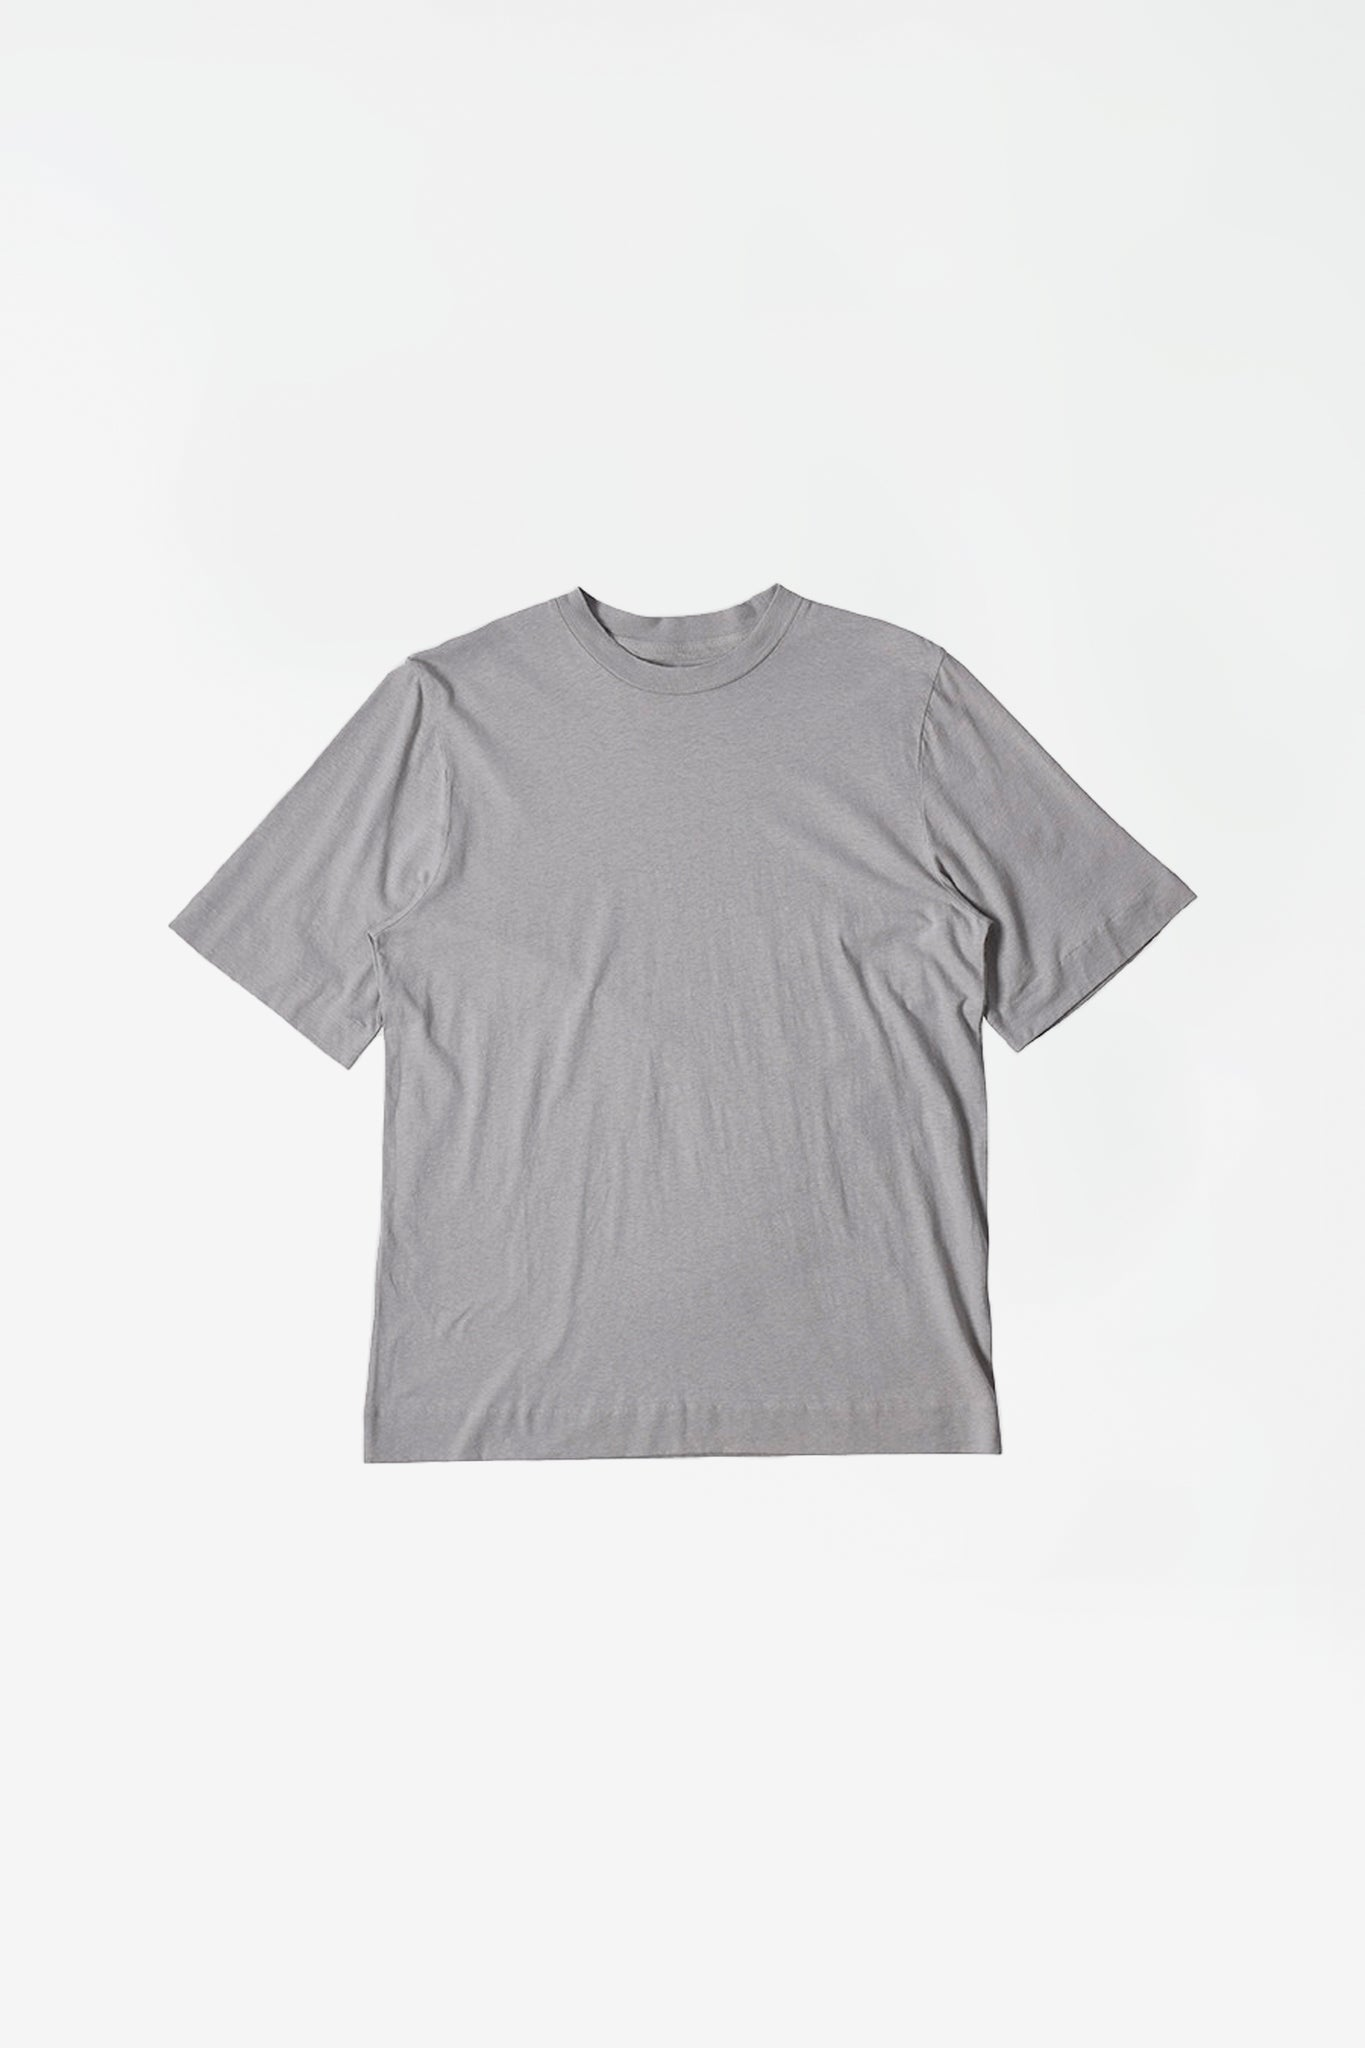 Basic T-shirt cotton linen concrete